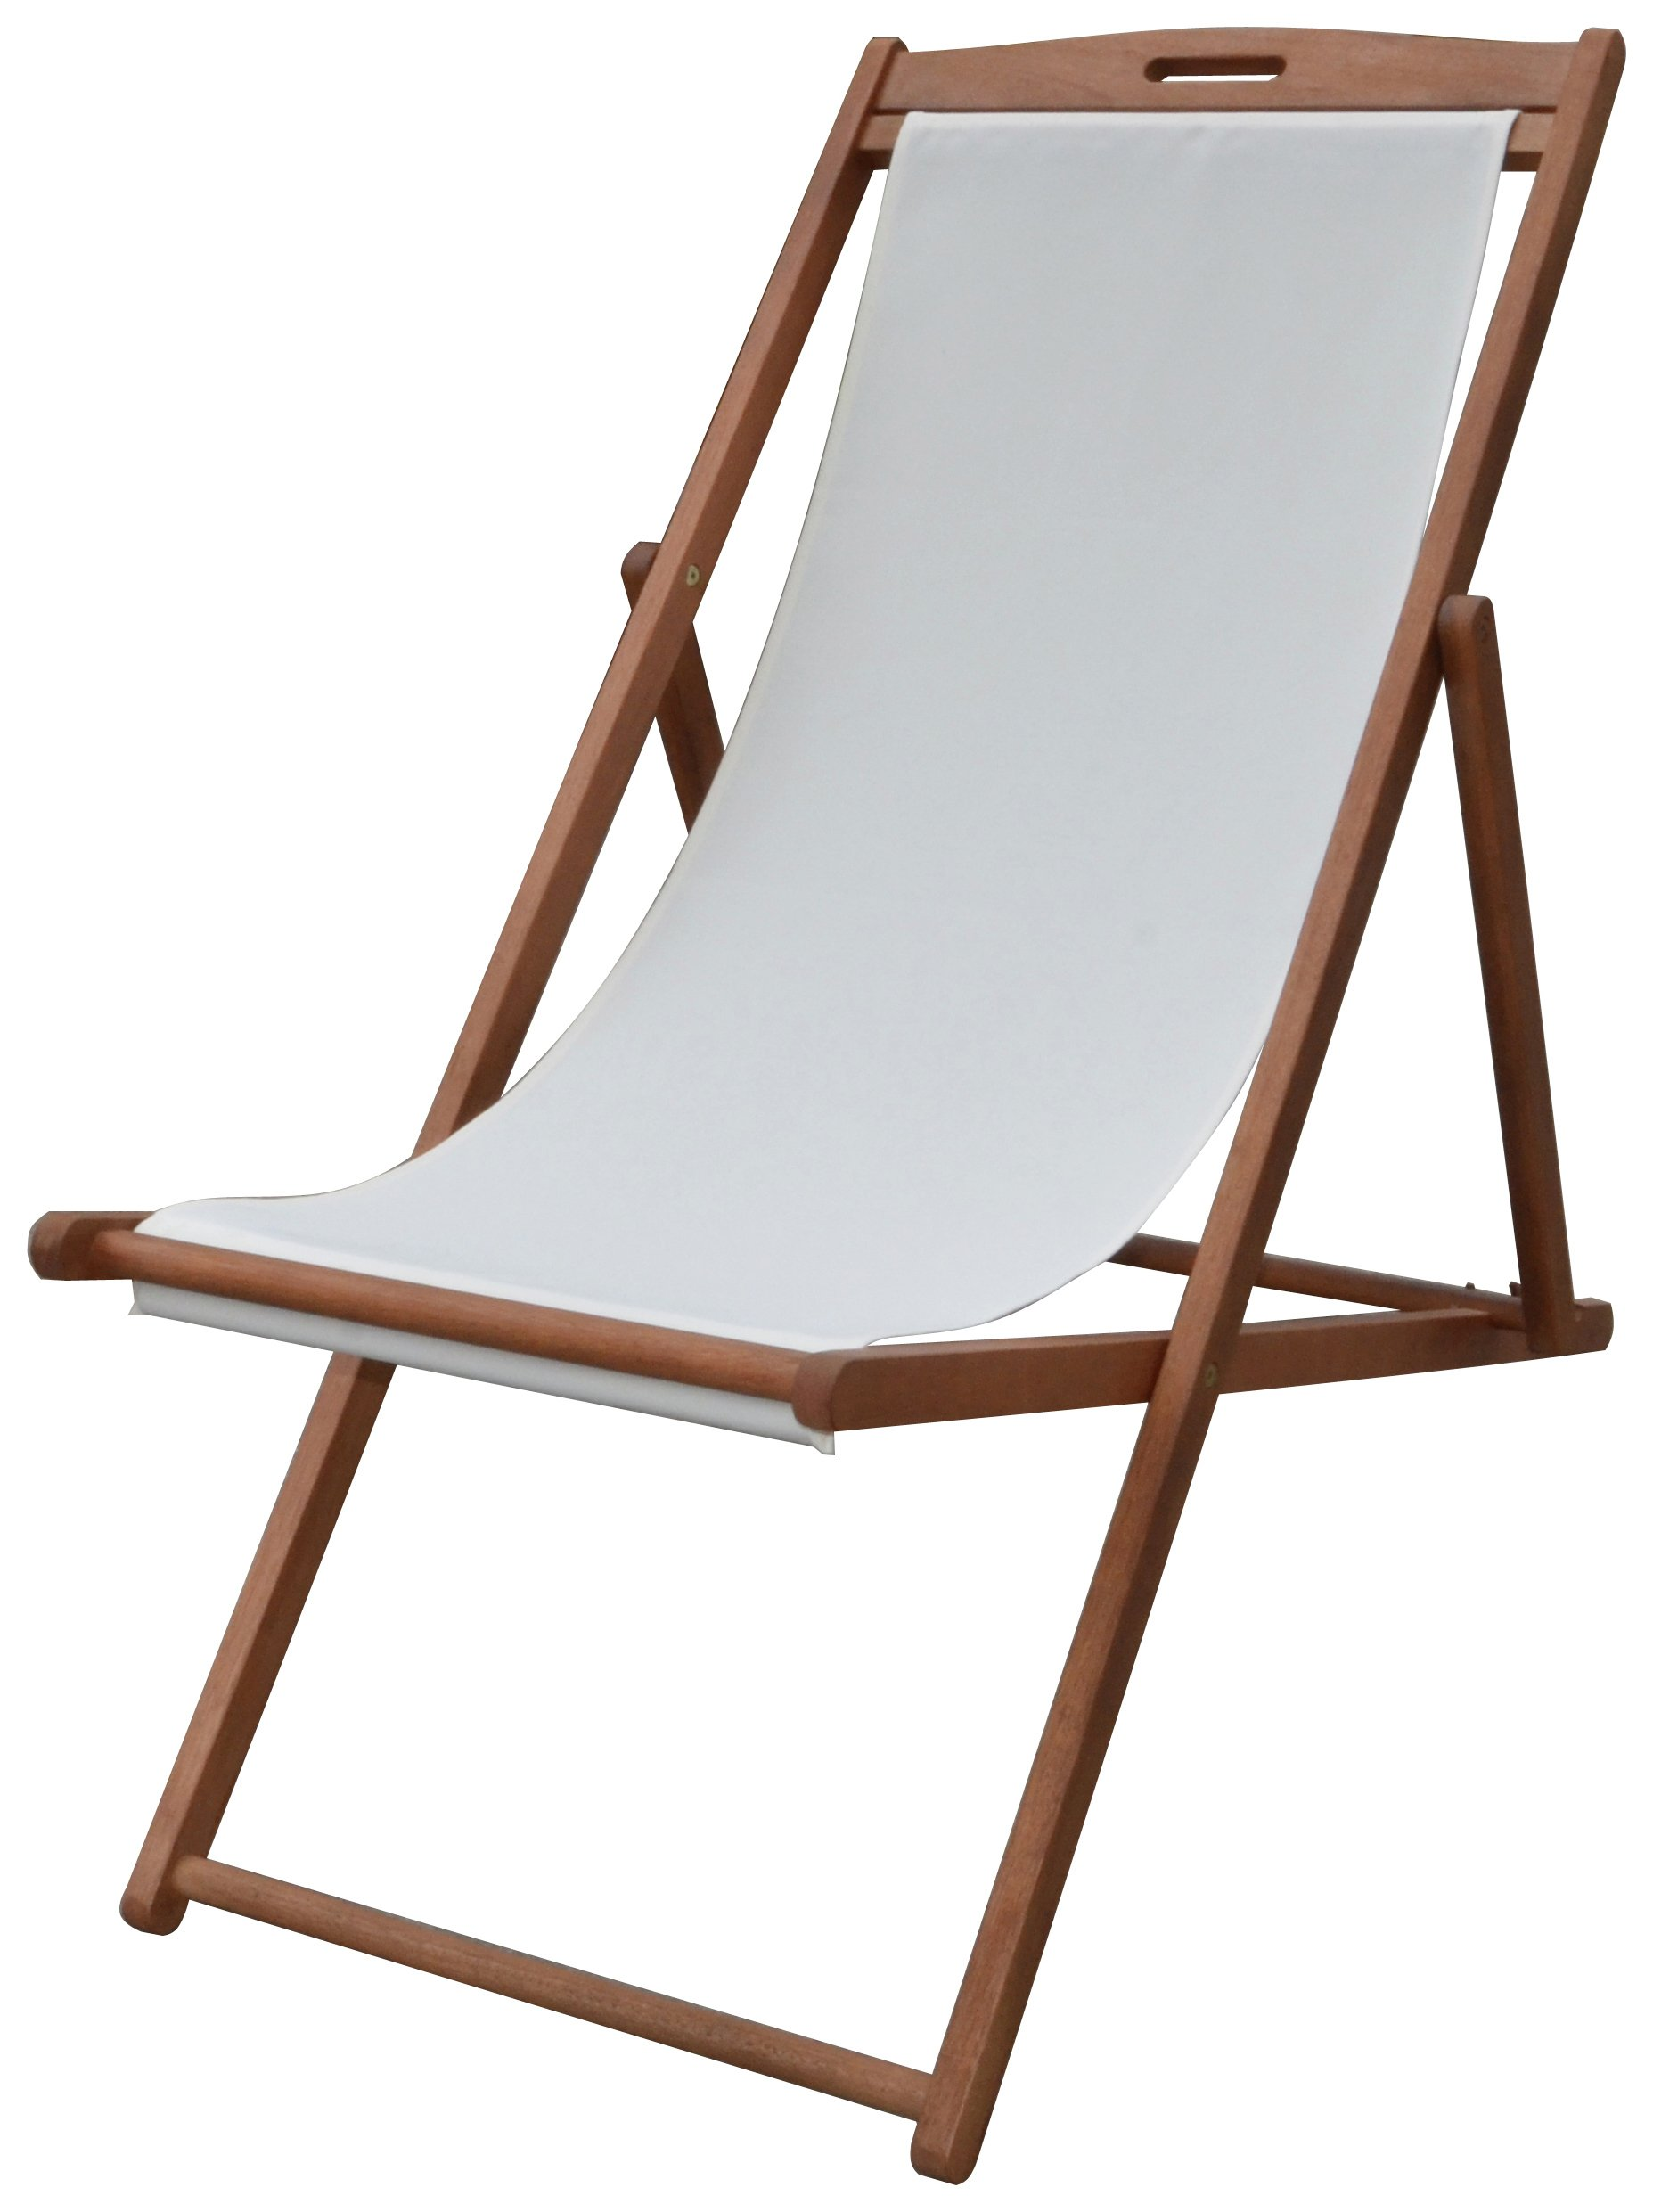 deck chair images diy wood mat buy argos home cream garden chairs and sun